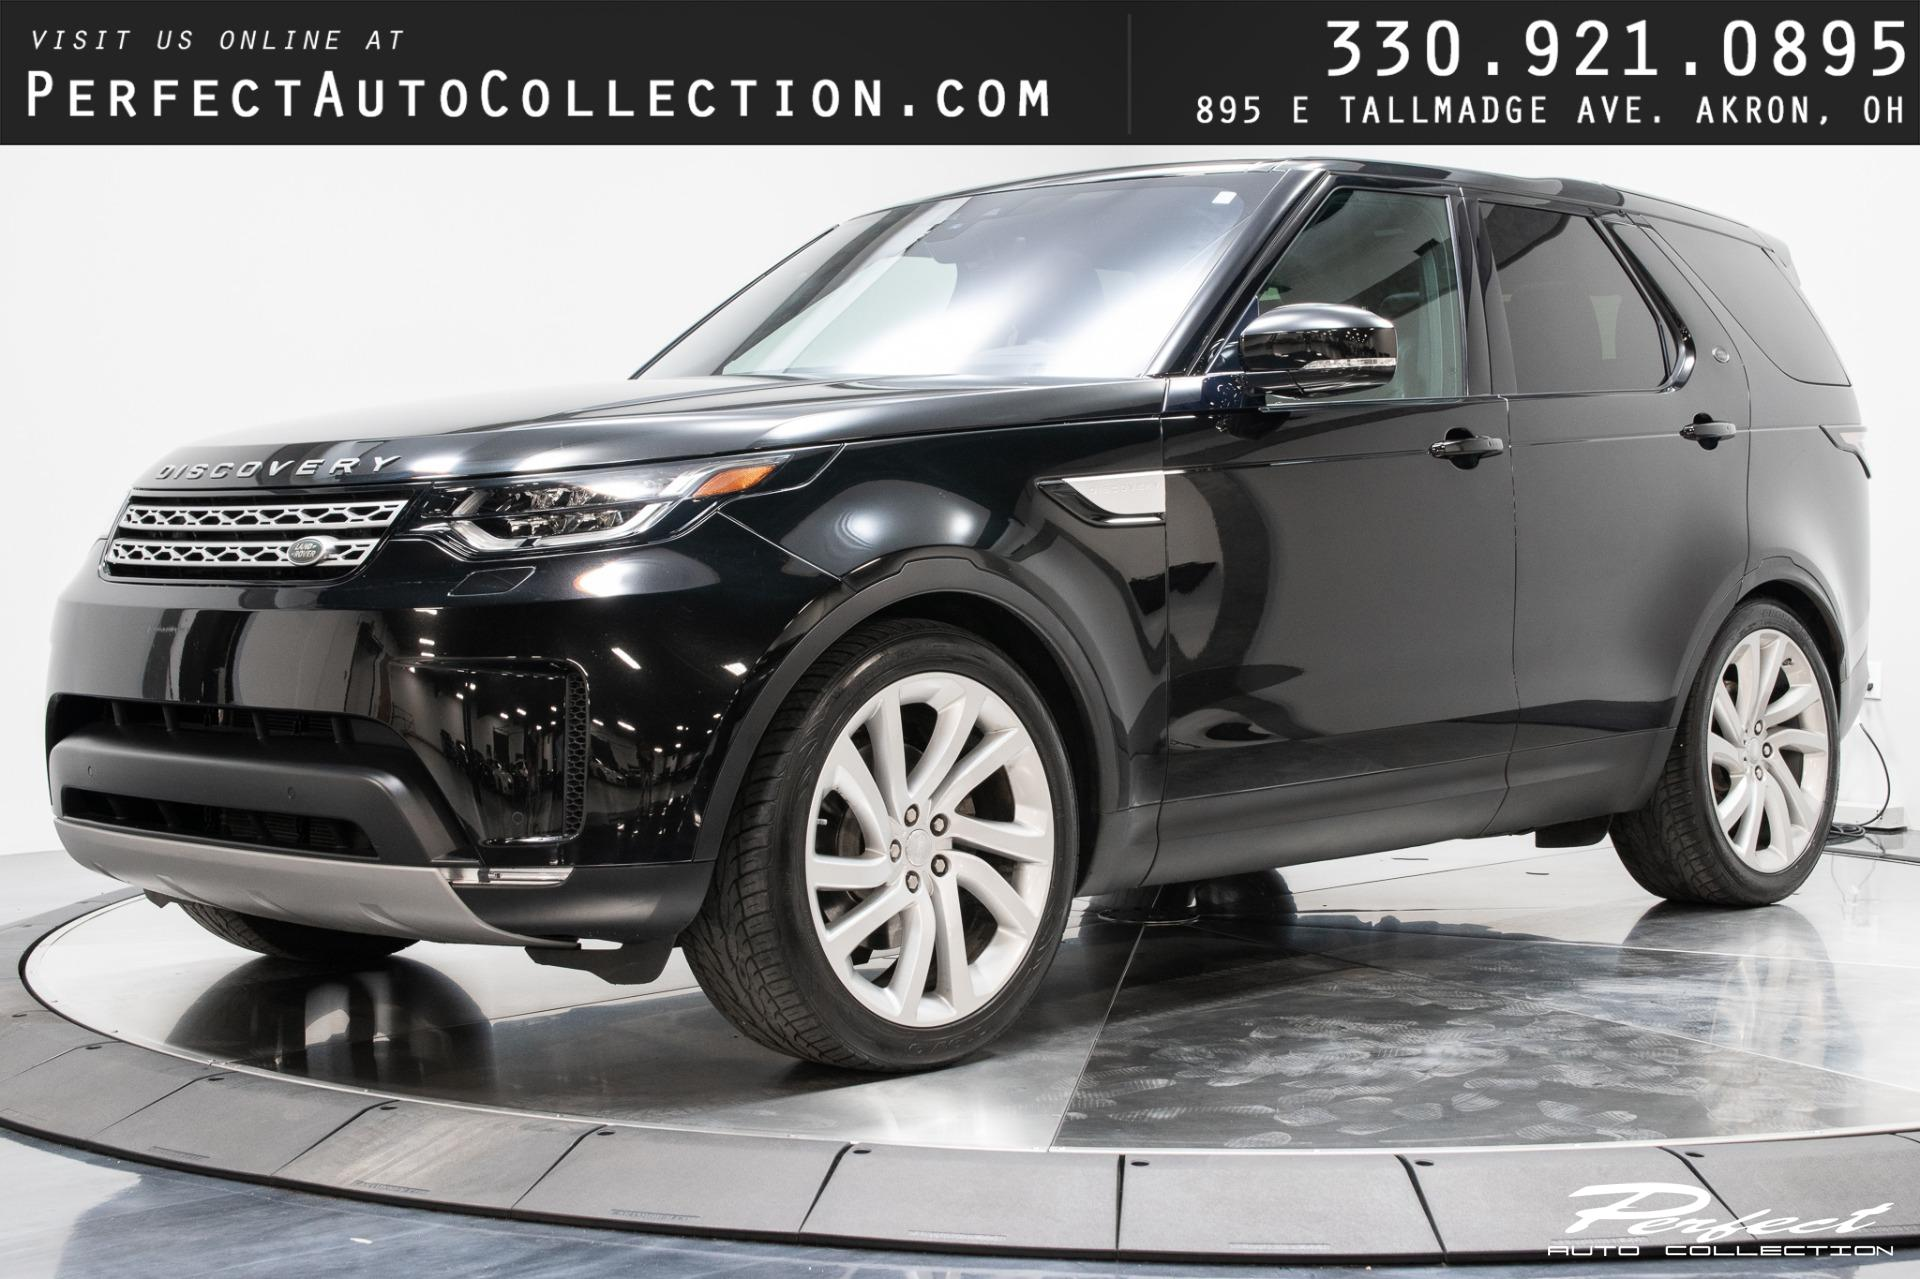 Used 2017 Land Rover Discovery HSE Td6 for sale $42,893 at Perfect Auto Collection in Akron OH 44310 1